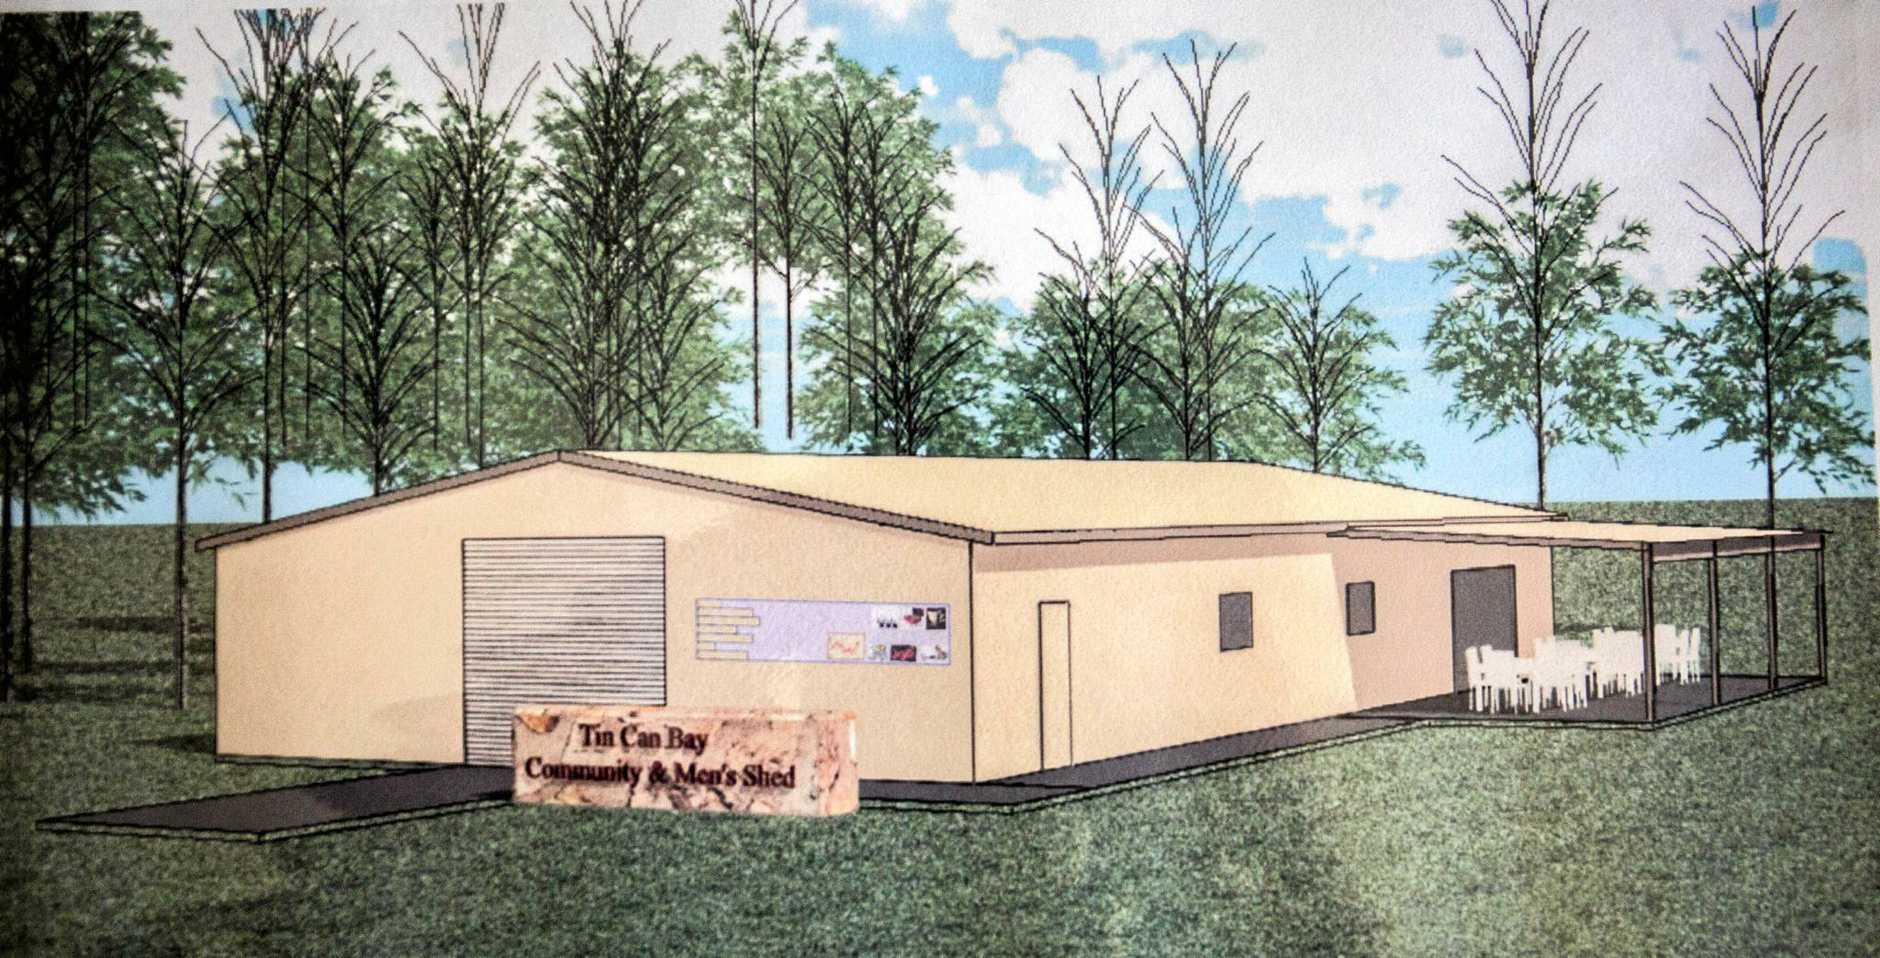 Artist impression and floor plan for the Tin Can Bay men's shed.